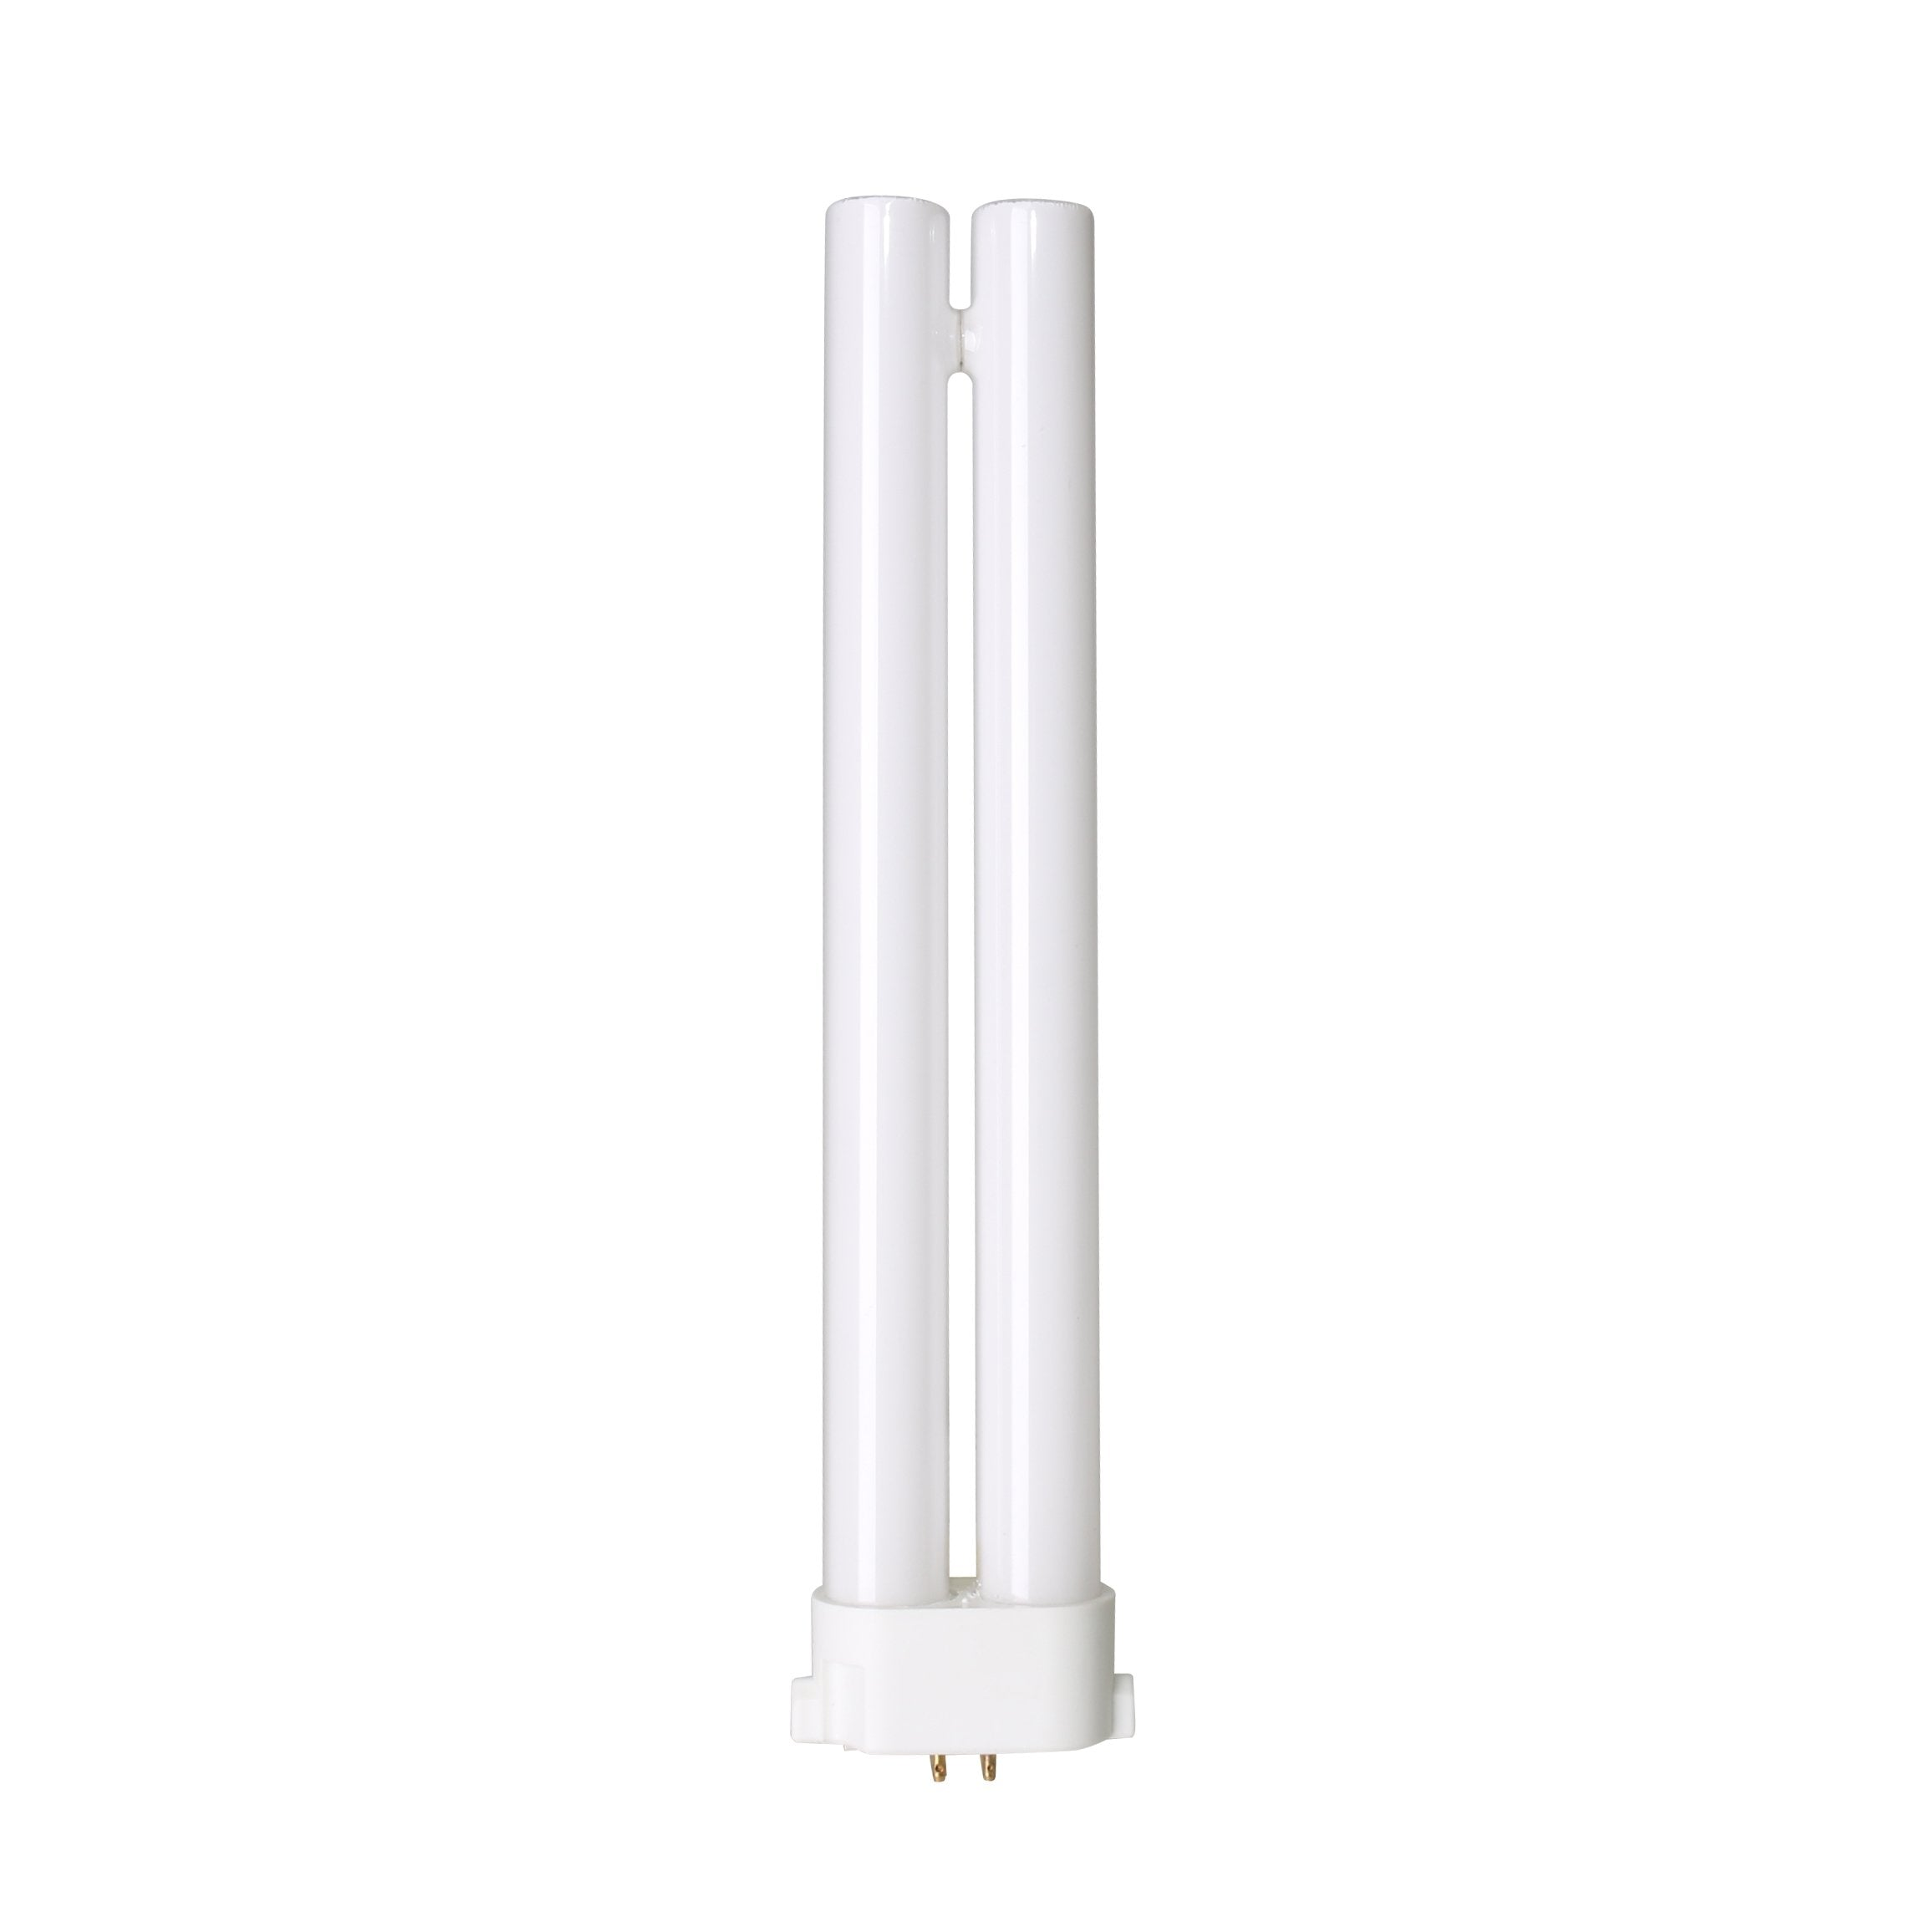 Ionmax DF3028 (Light Bulb)-Other Accessories-Andatech